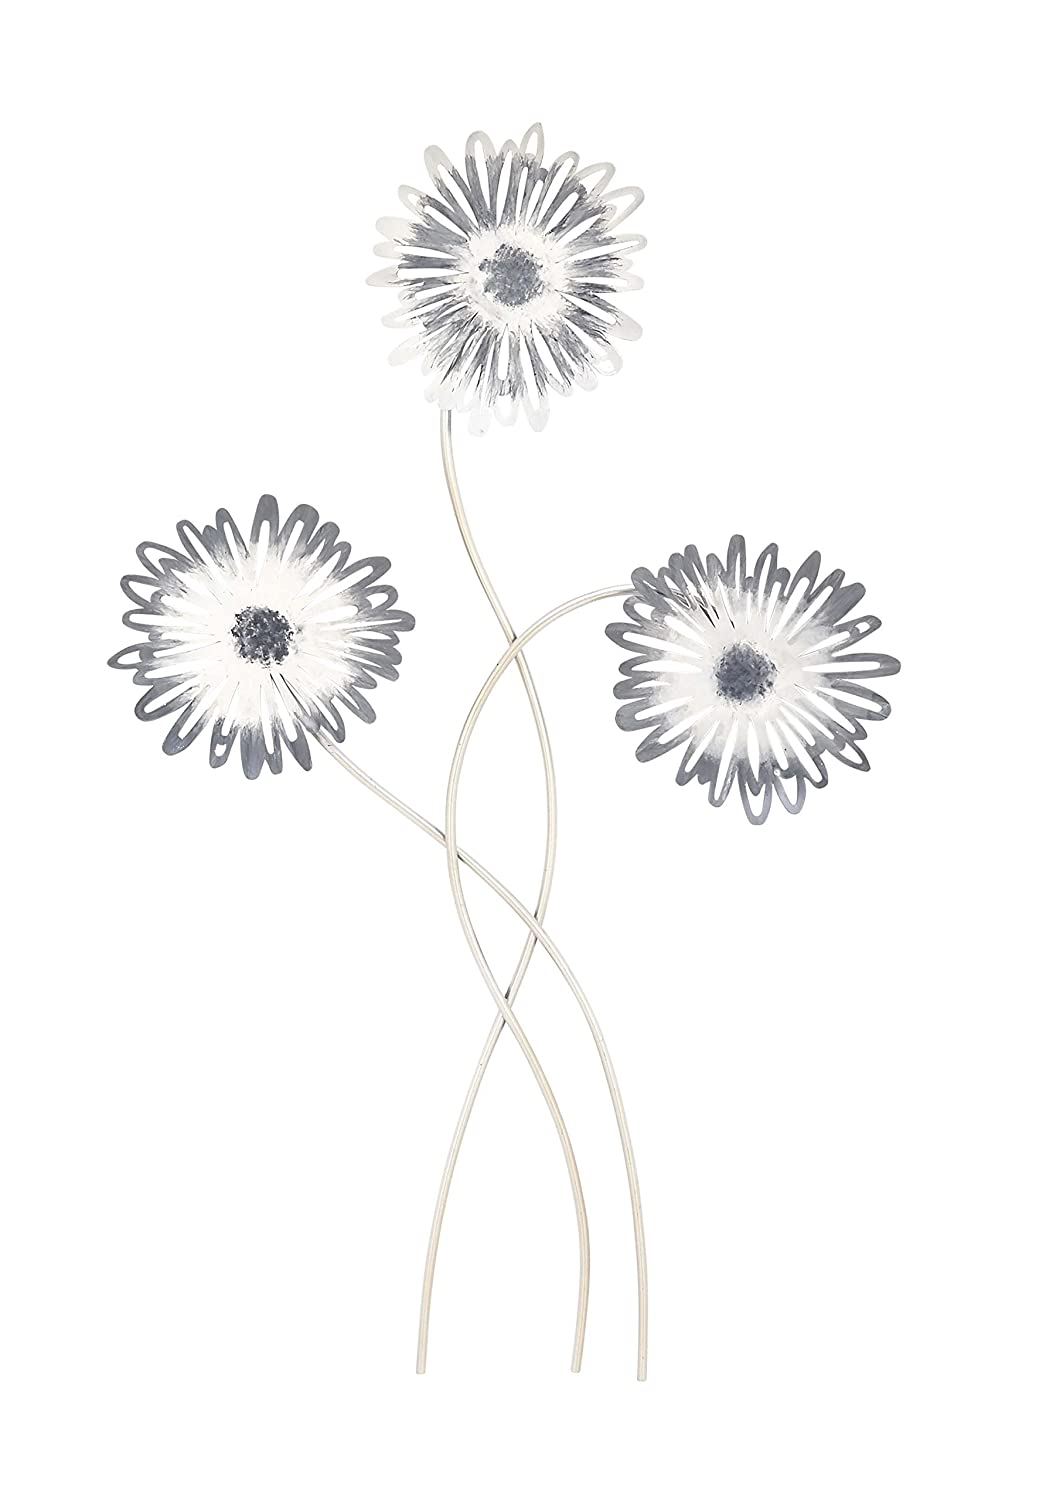 Deco 79 22637 Flower Metal Wall Decor 12 x 32 Black//Brass//Silver Set of 2